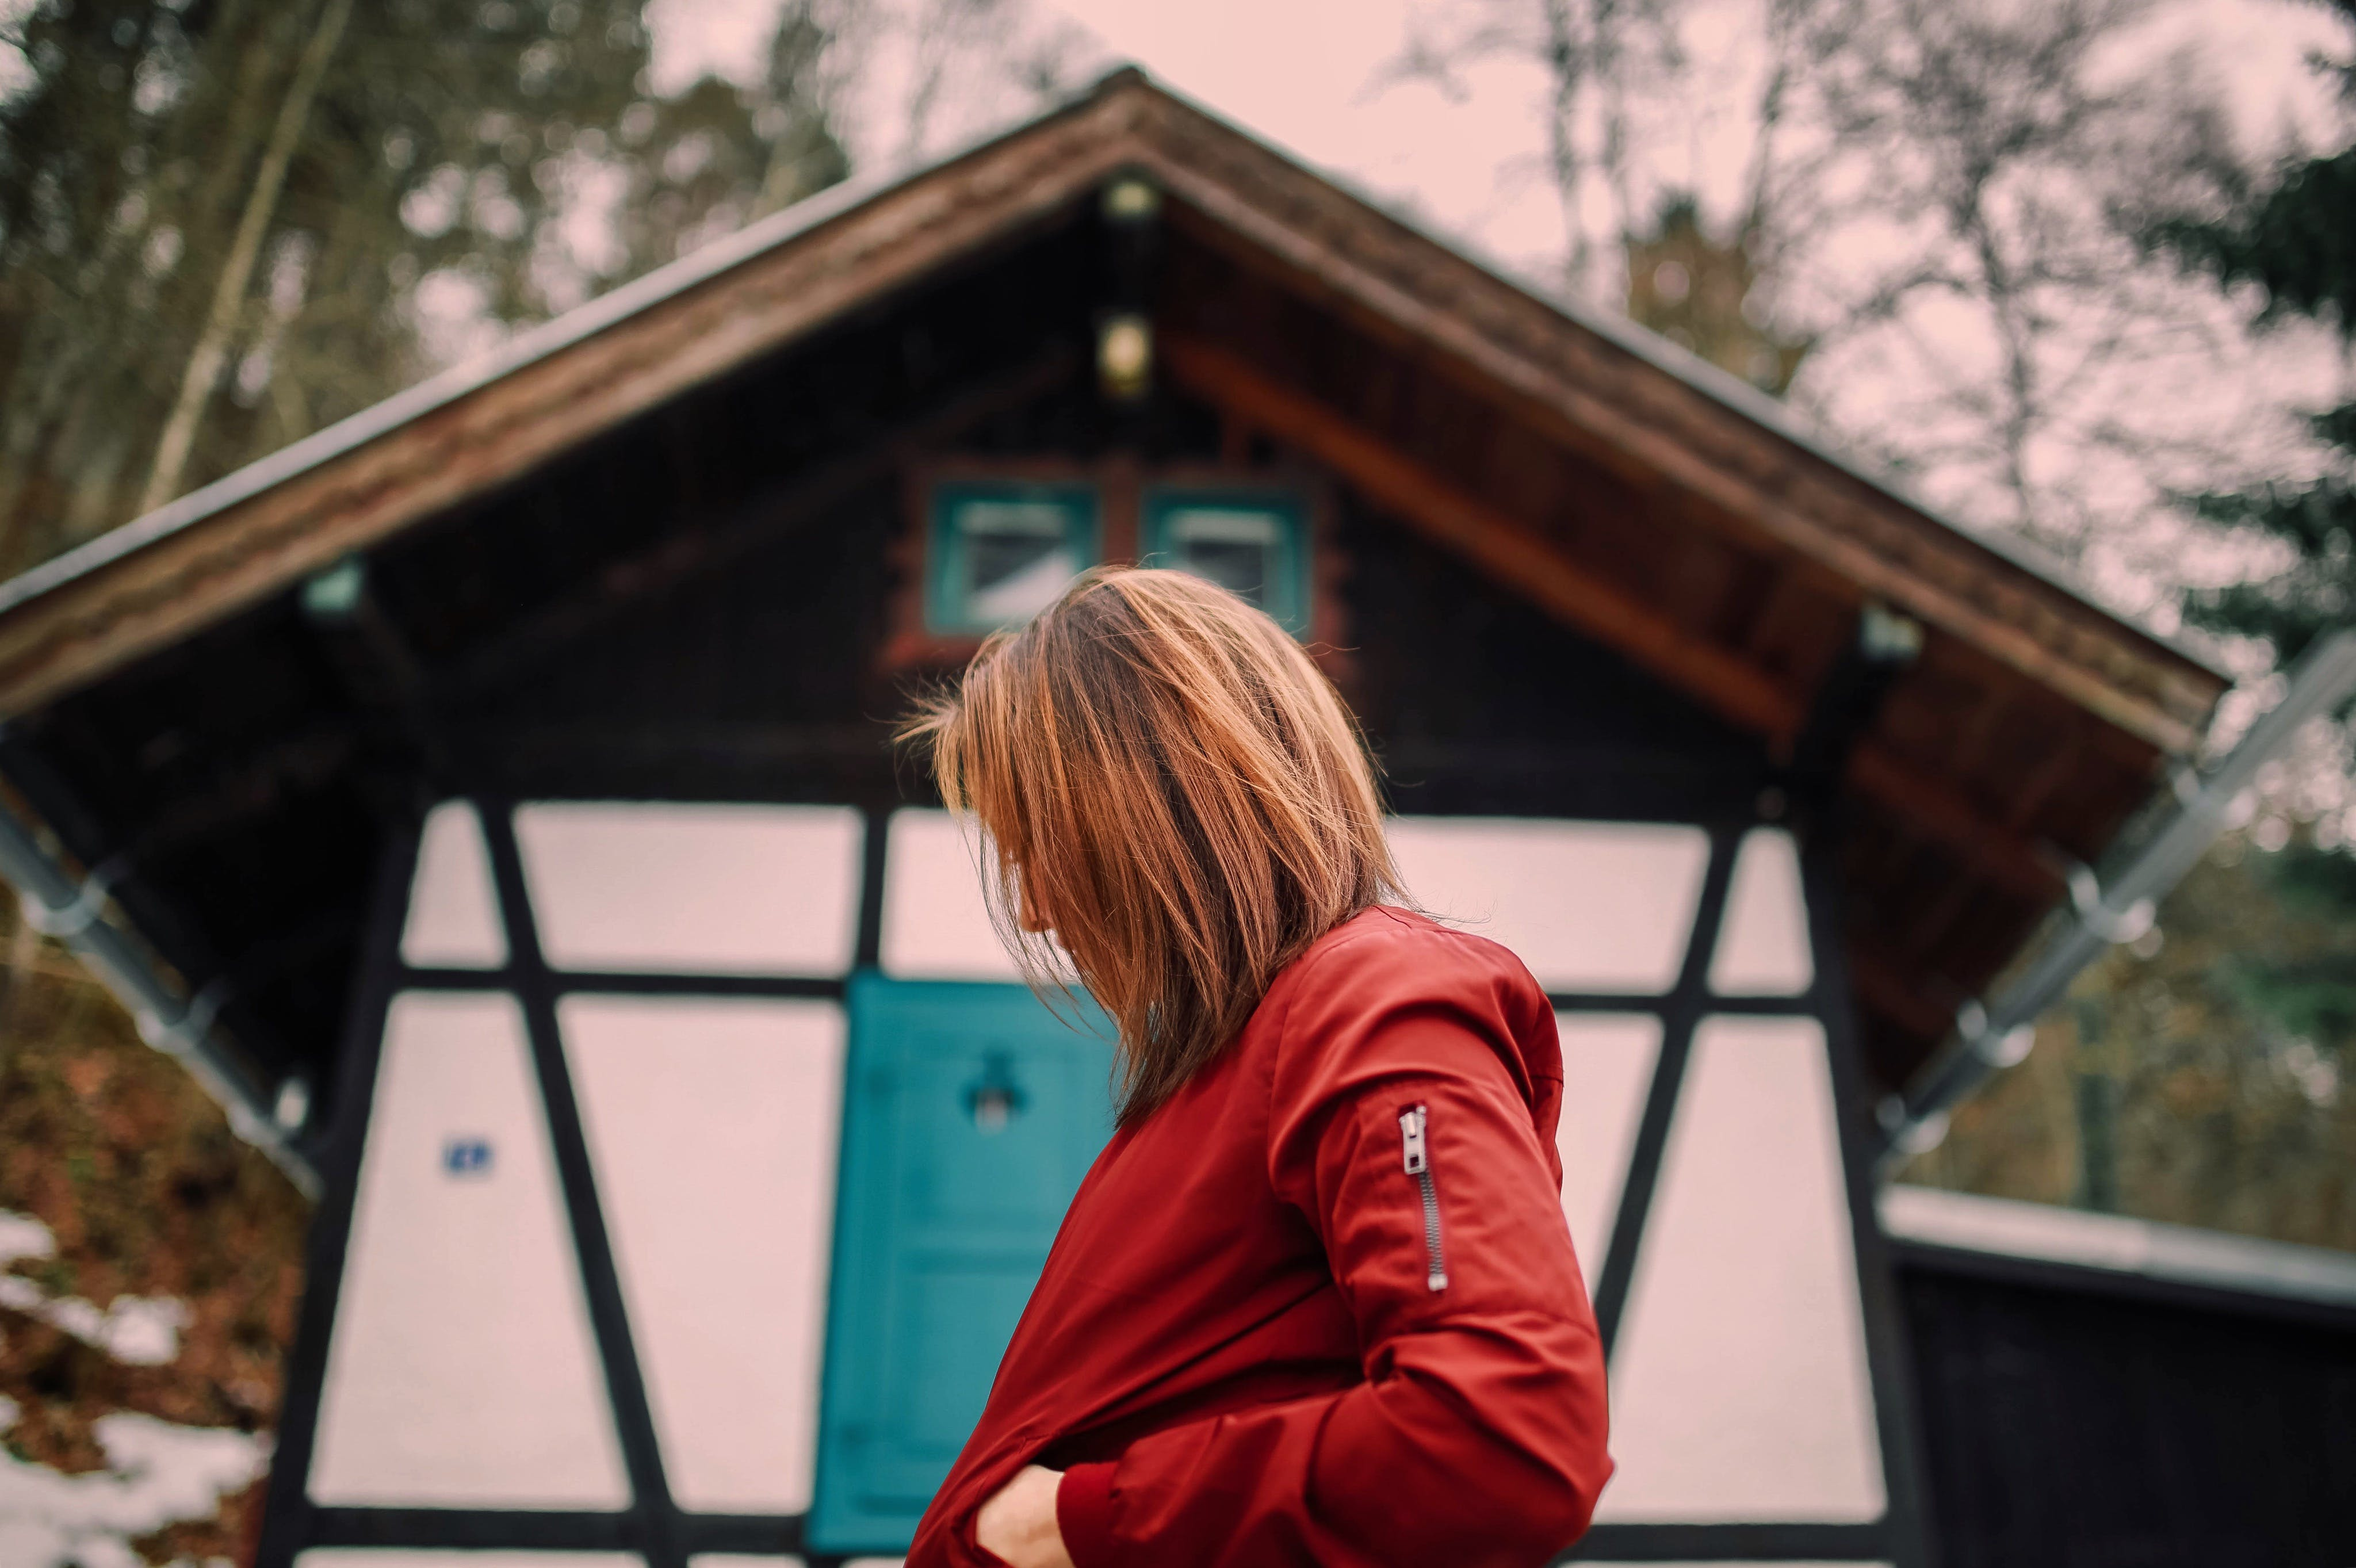 Woman in Red Jacket Standing Near Brown and White Wooden House